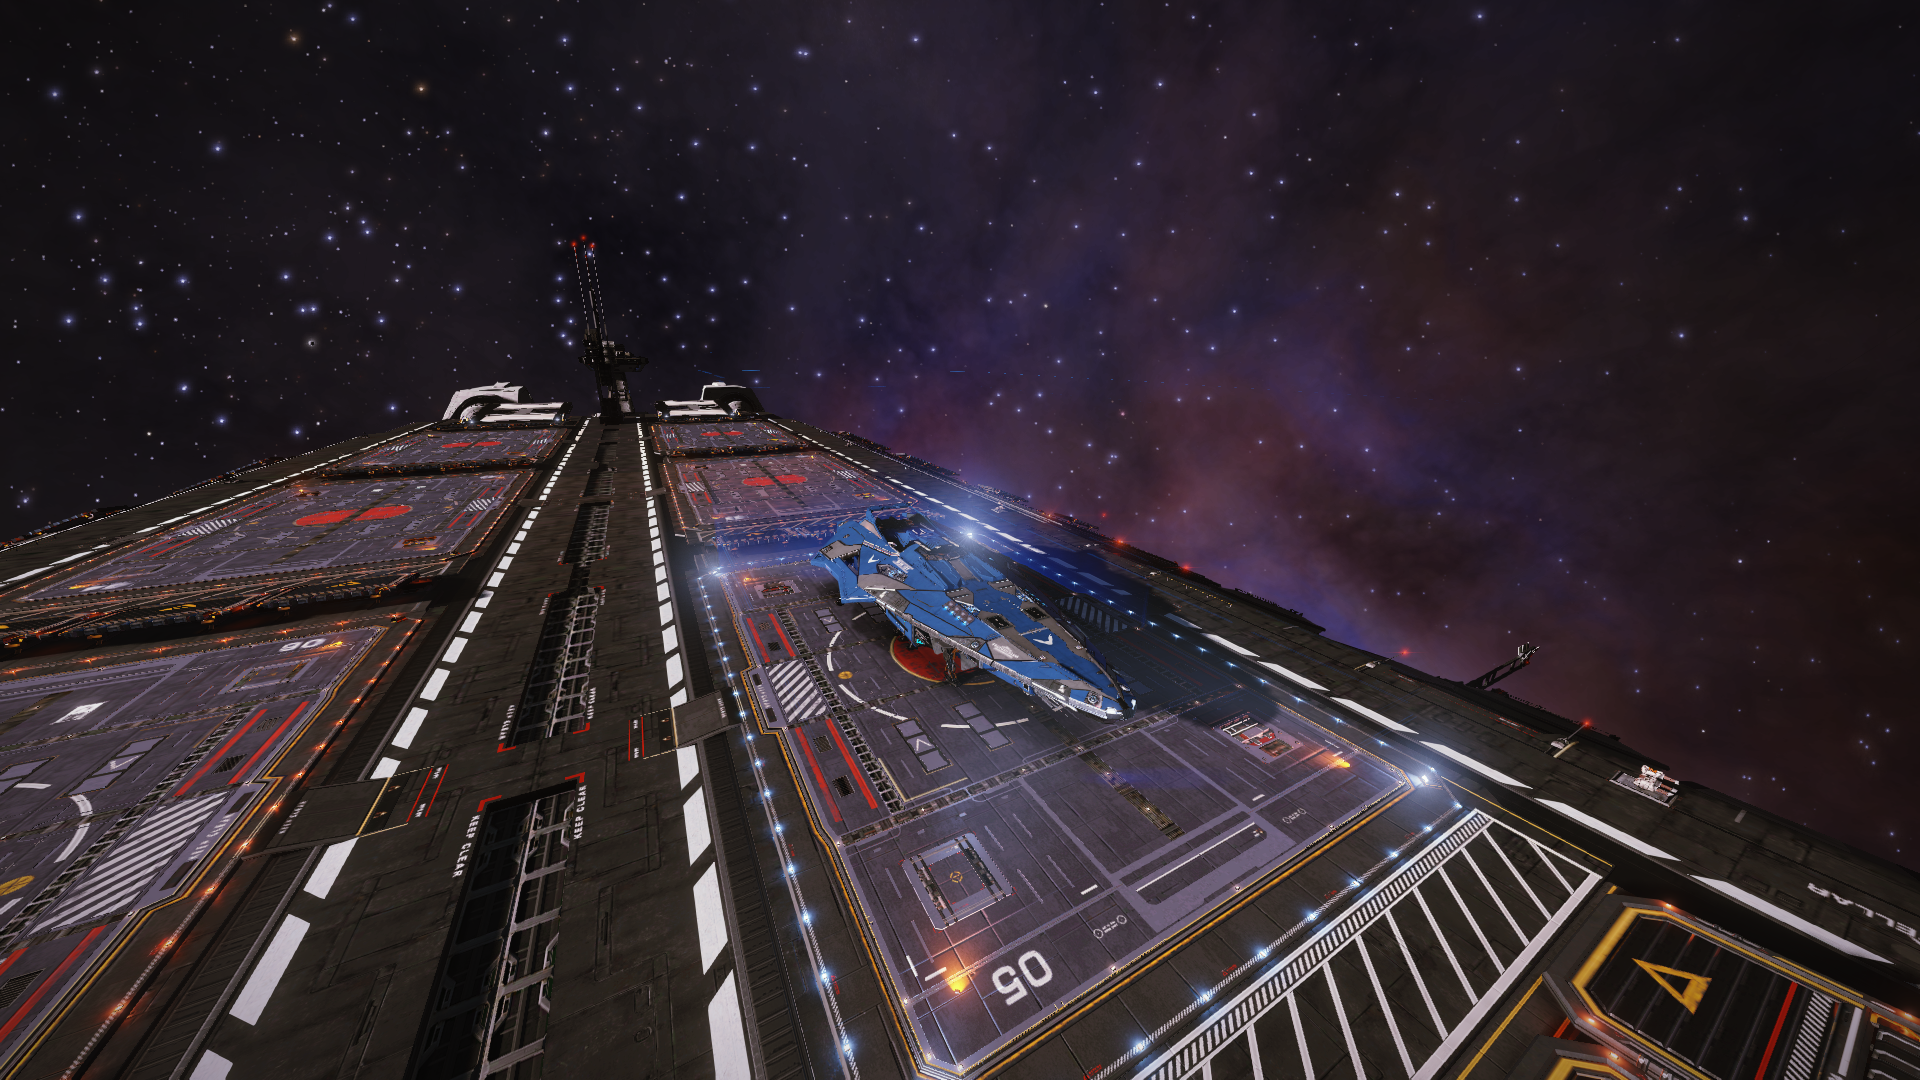 Docked and ready for departure from Colonia aboard ISTS Interstellar